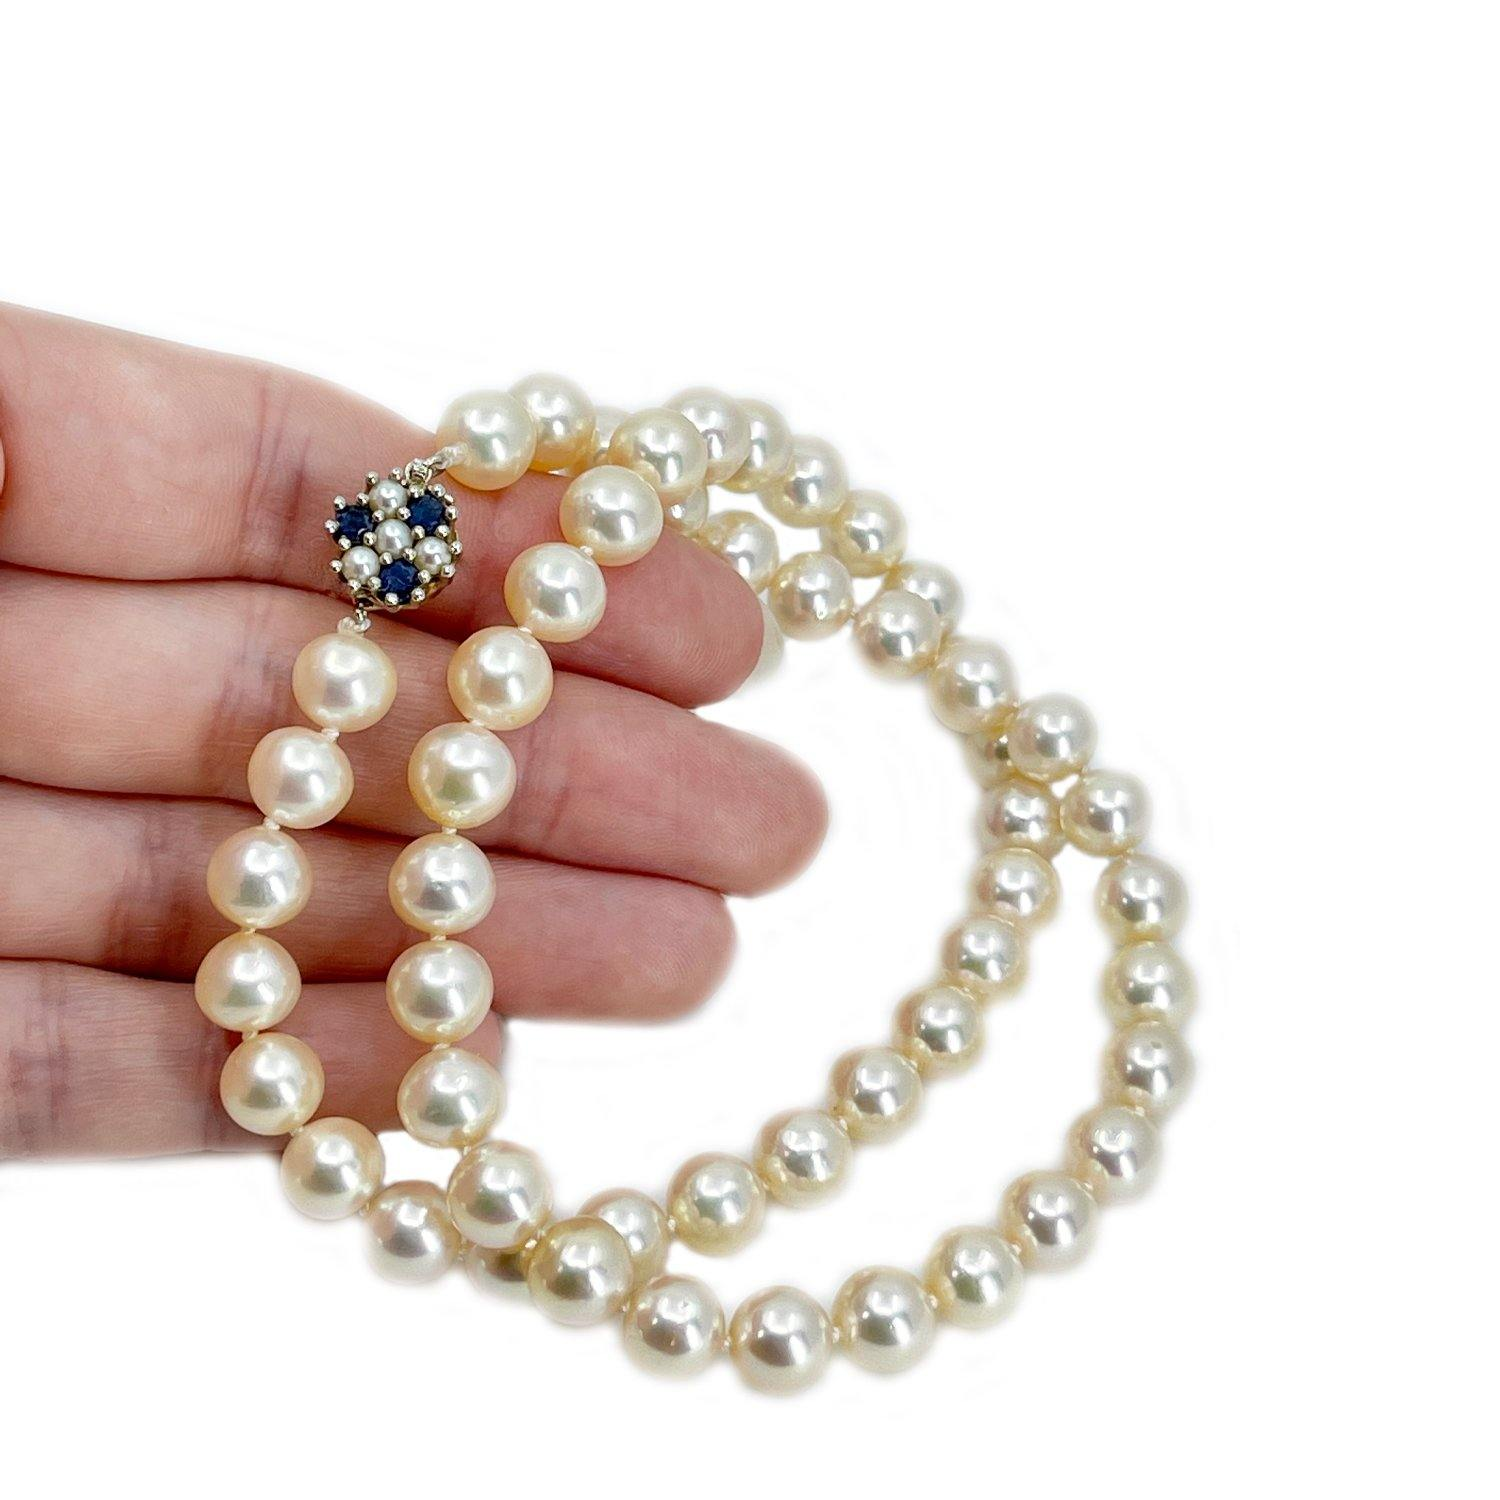 Stunning Retro Cultured Akoya Pearl Strand - 14K White Gold & Natural Blue Sapphire 17.50 Inch